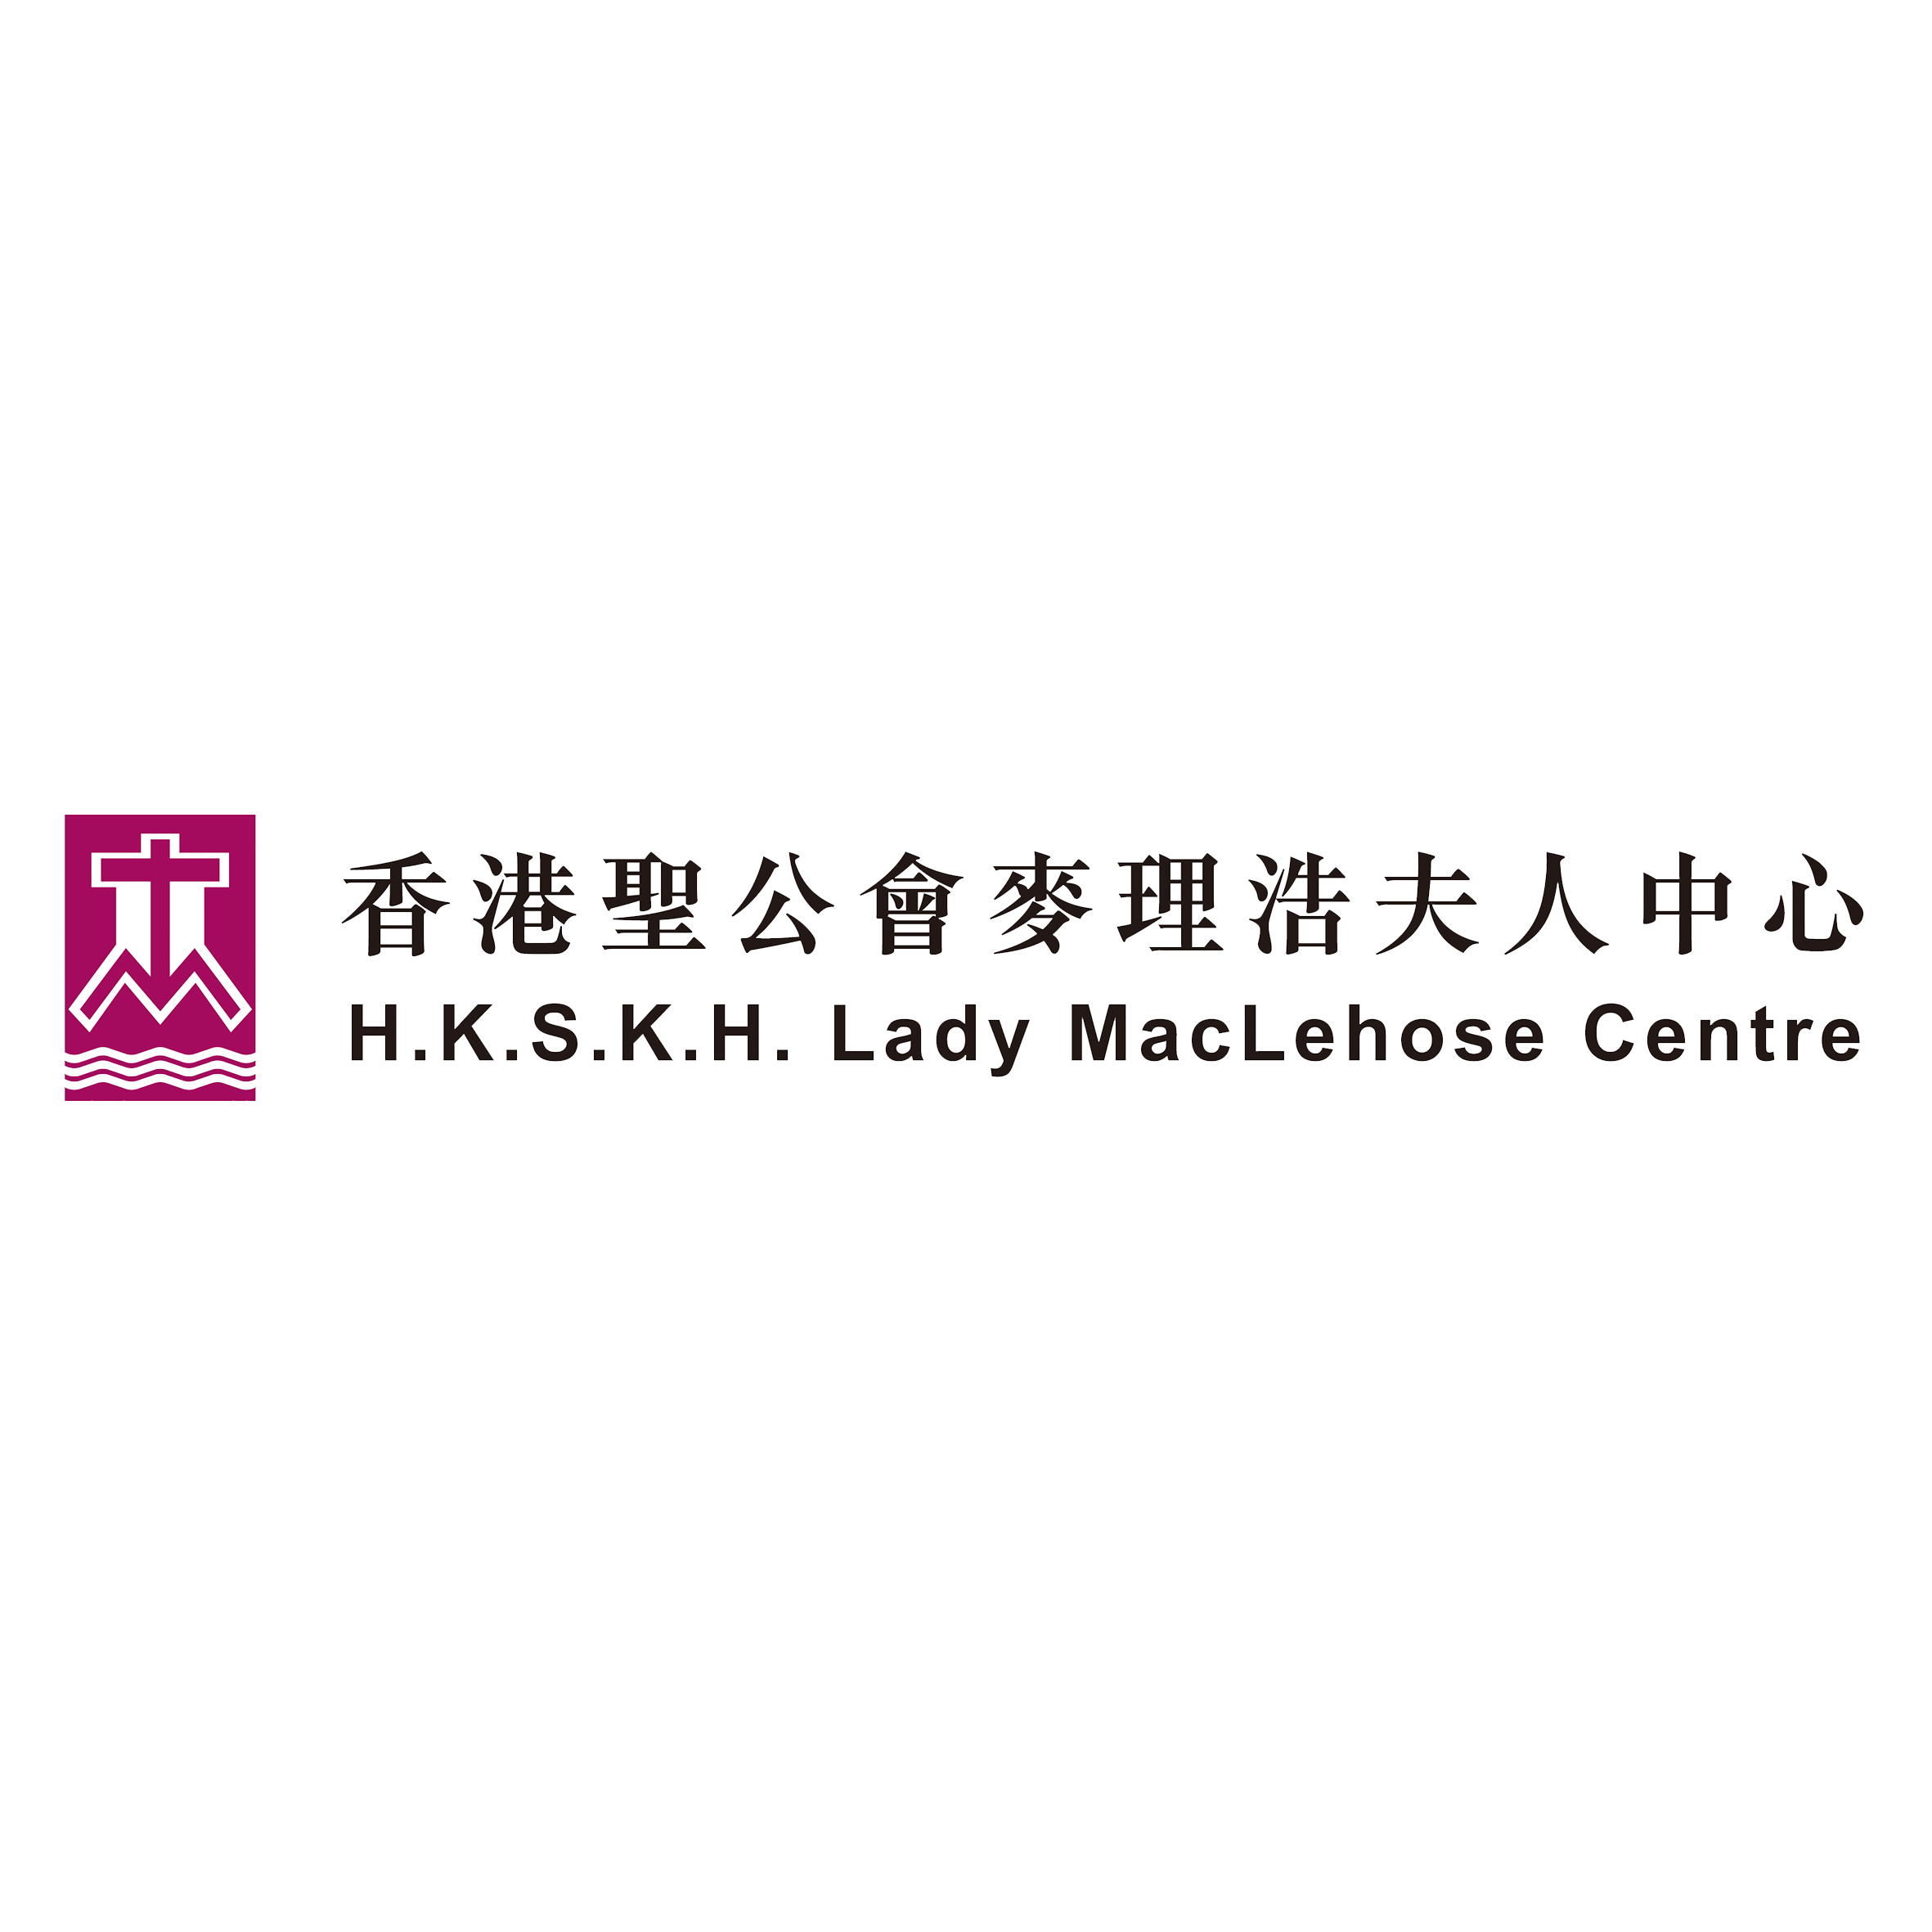 Search Results HKSKH Lady MacLehose Centre